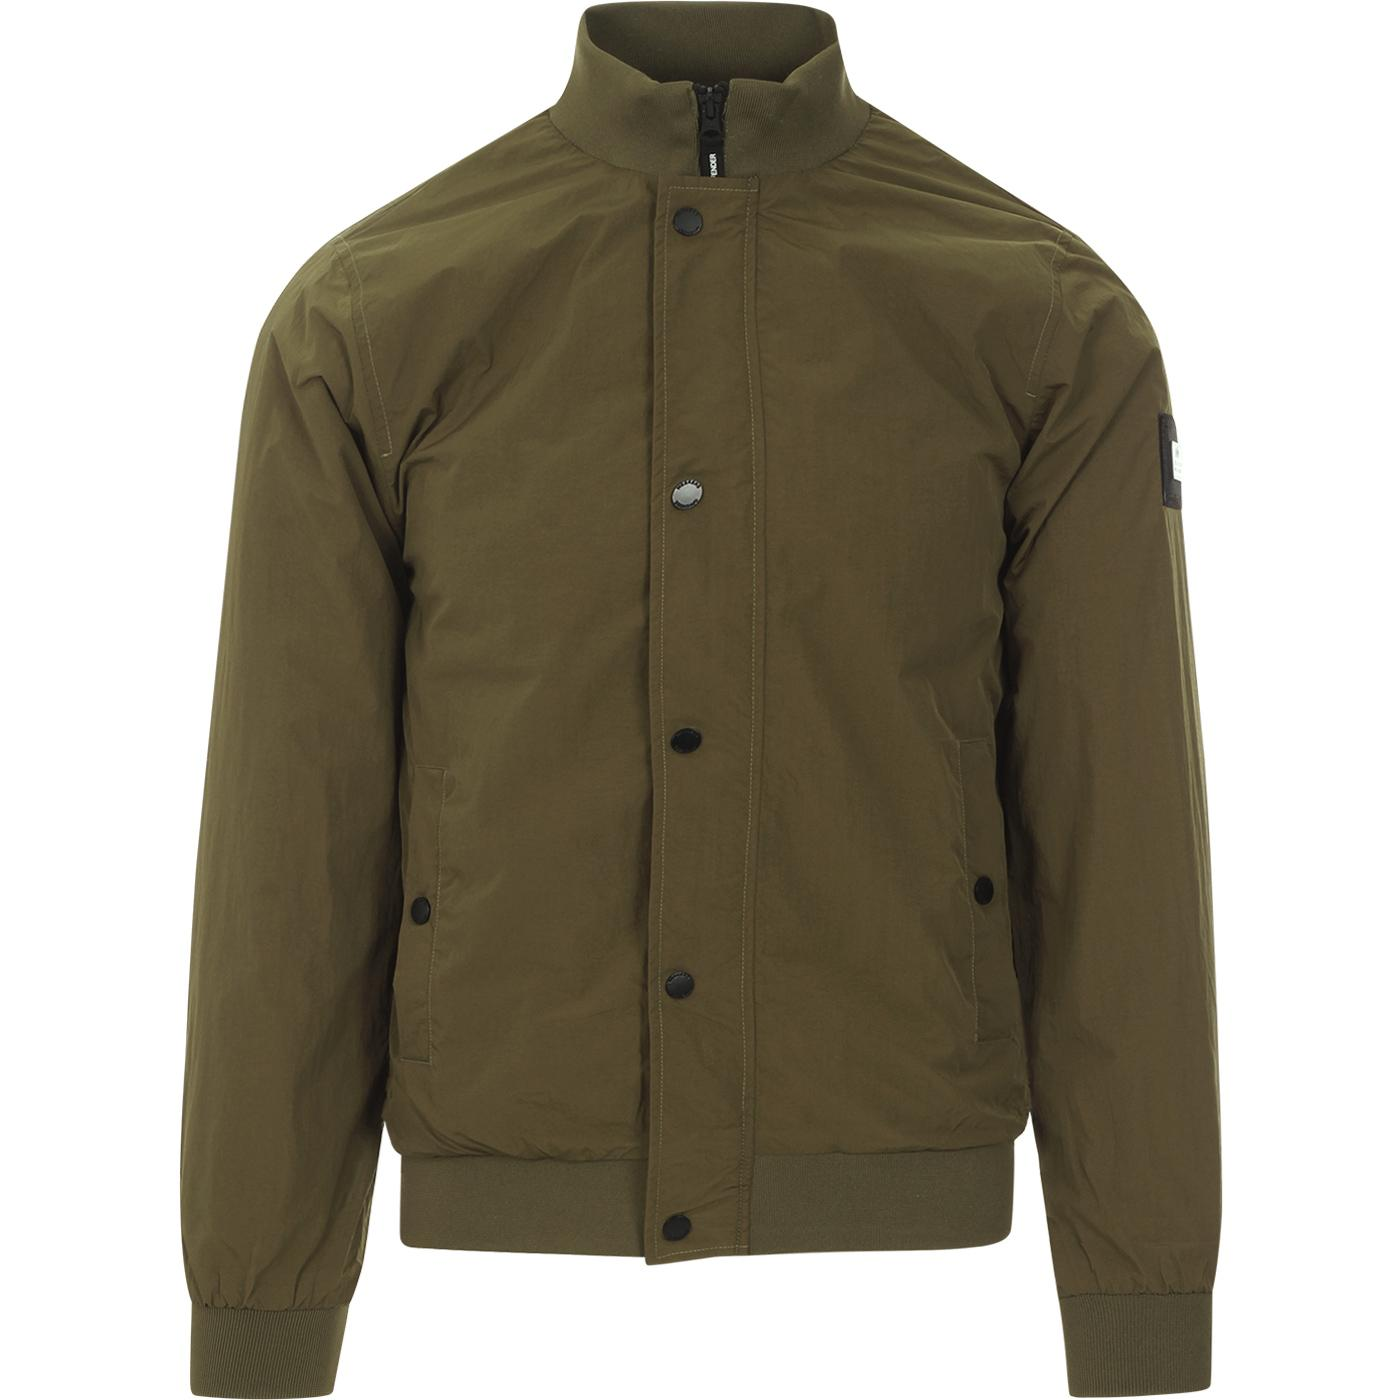 Riberalata WEEKEND OFFENDER Military Bomber Jacket